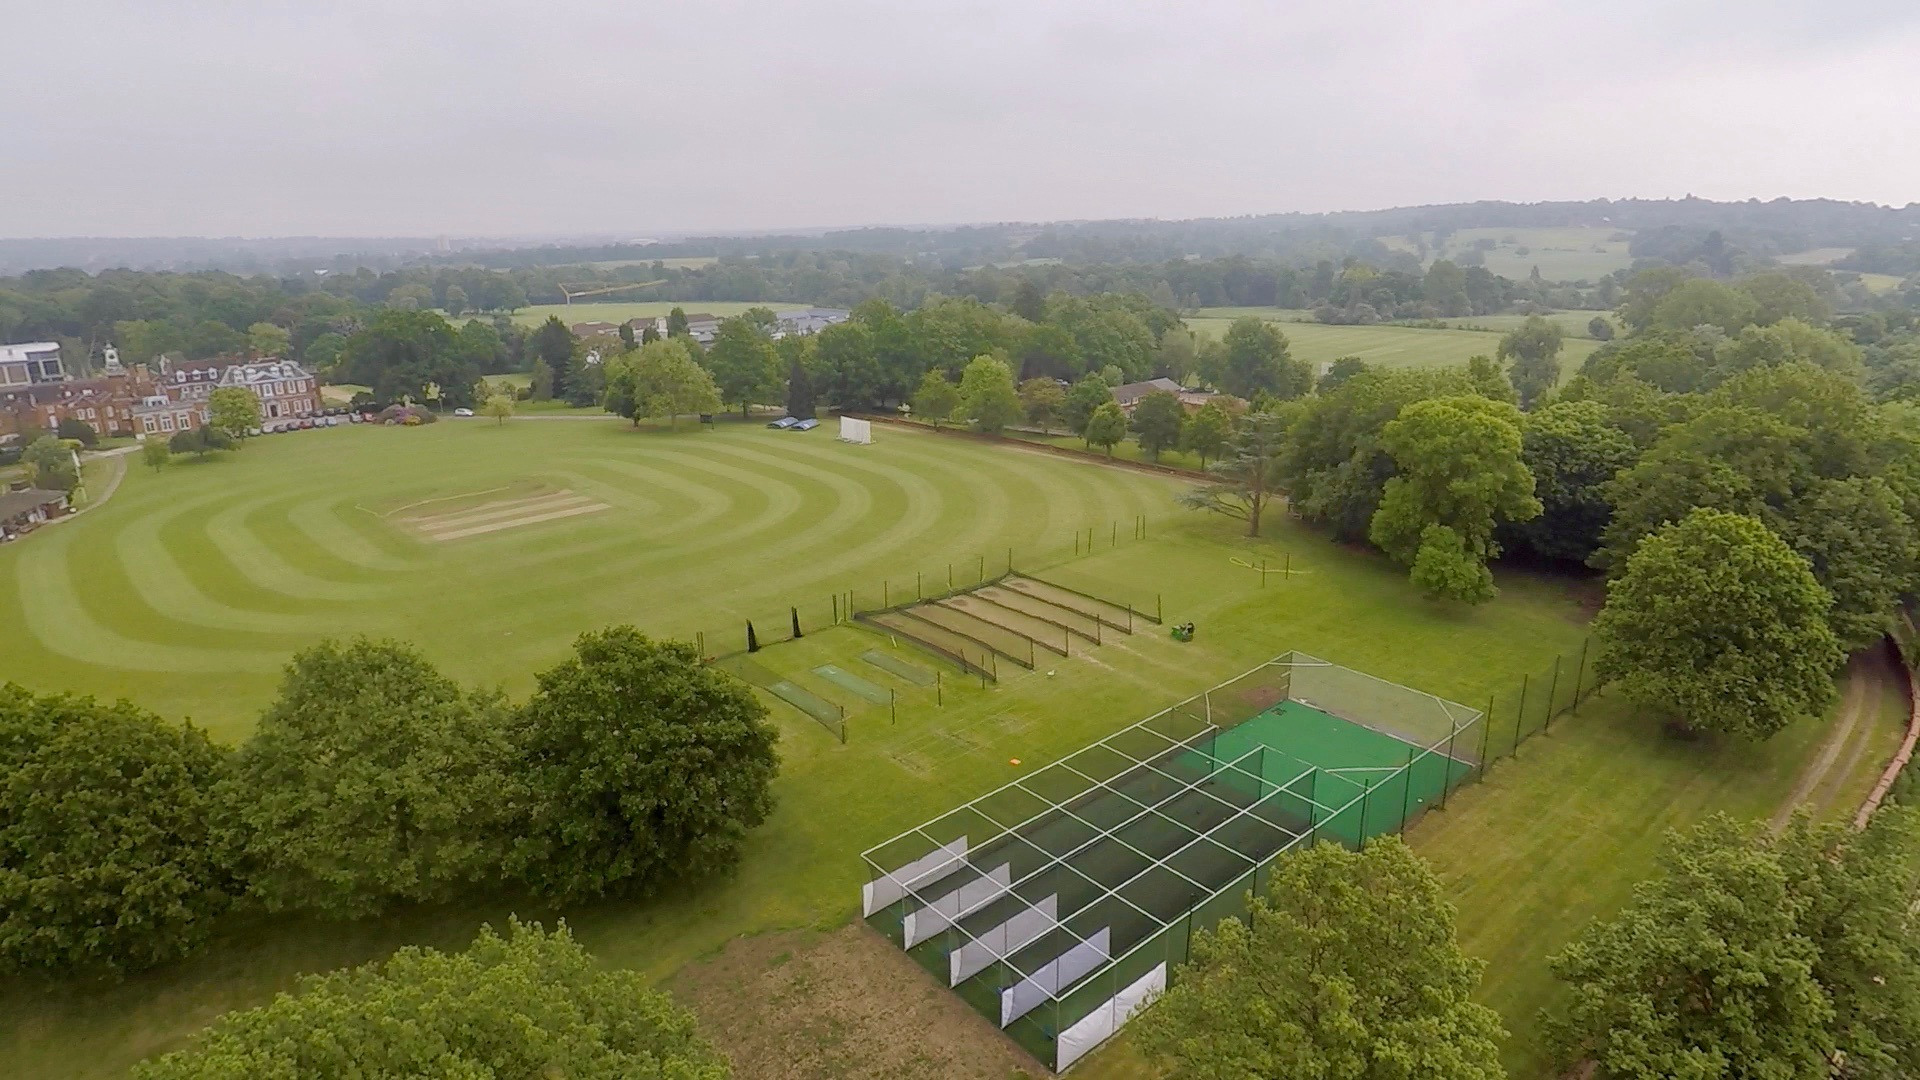 total-play installed a new non-turf cricket practice facility at The Haberdasher's Aske's Boys' School